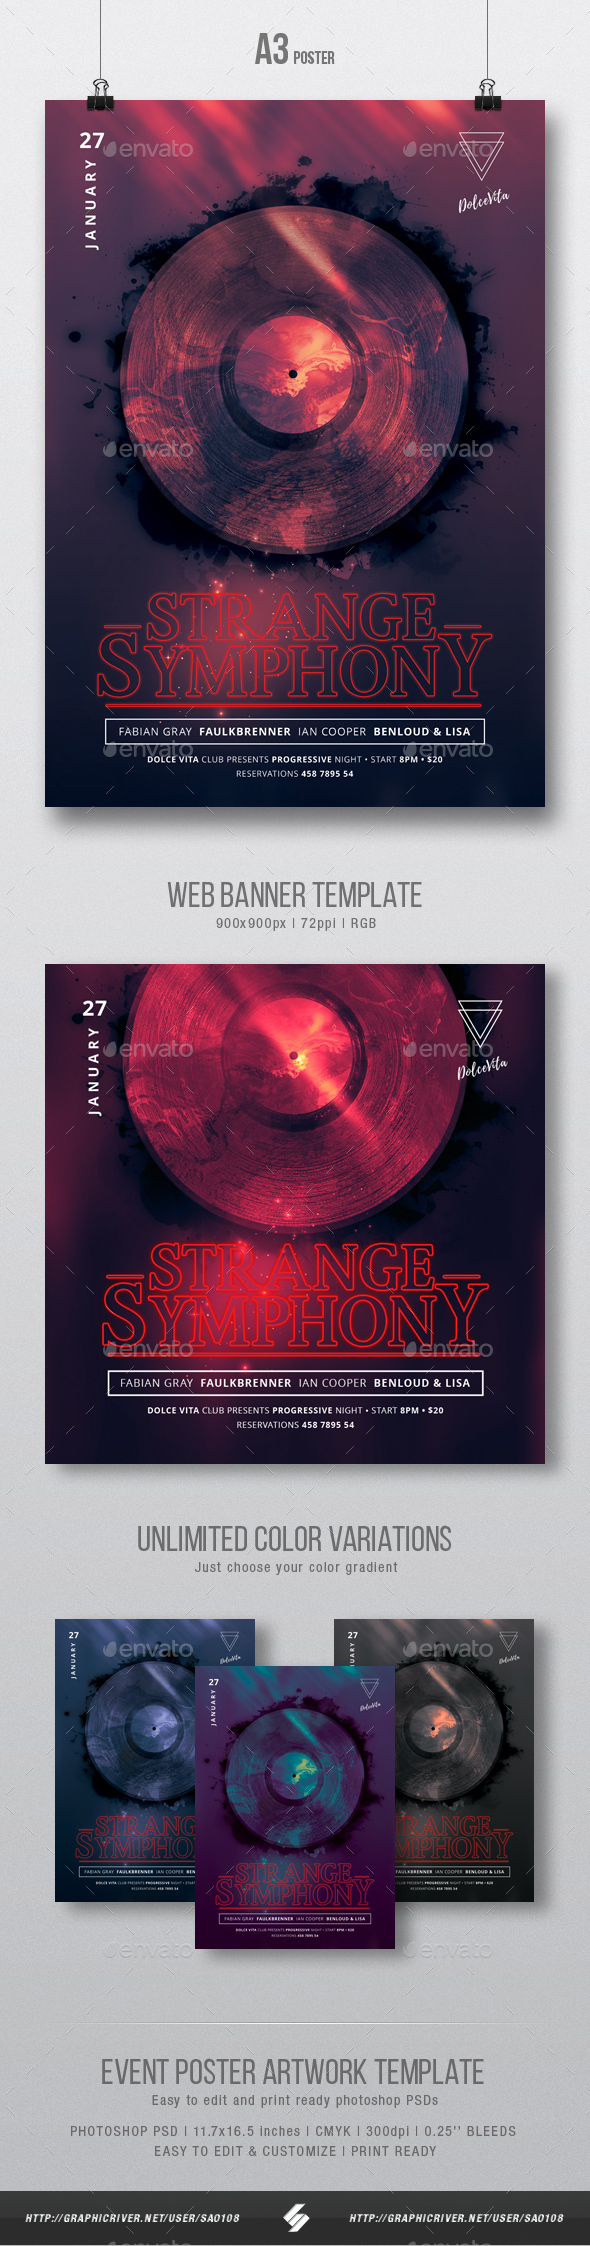 Strange Symphony - Dark Party Flyer / Poster Artwork Template A3 - Clubs & Parties Events